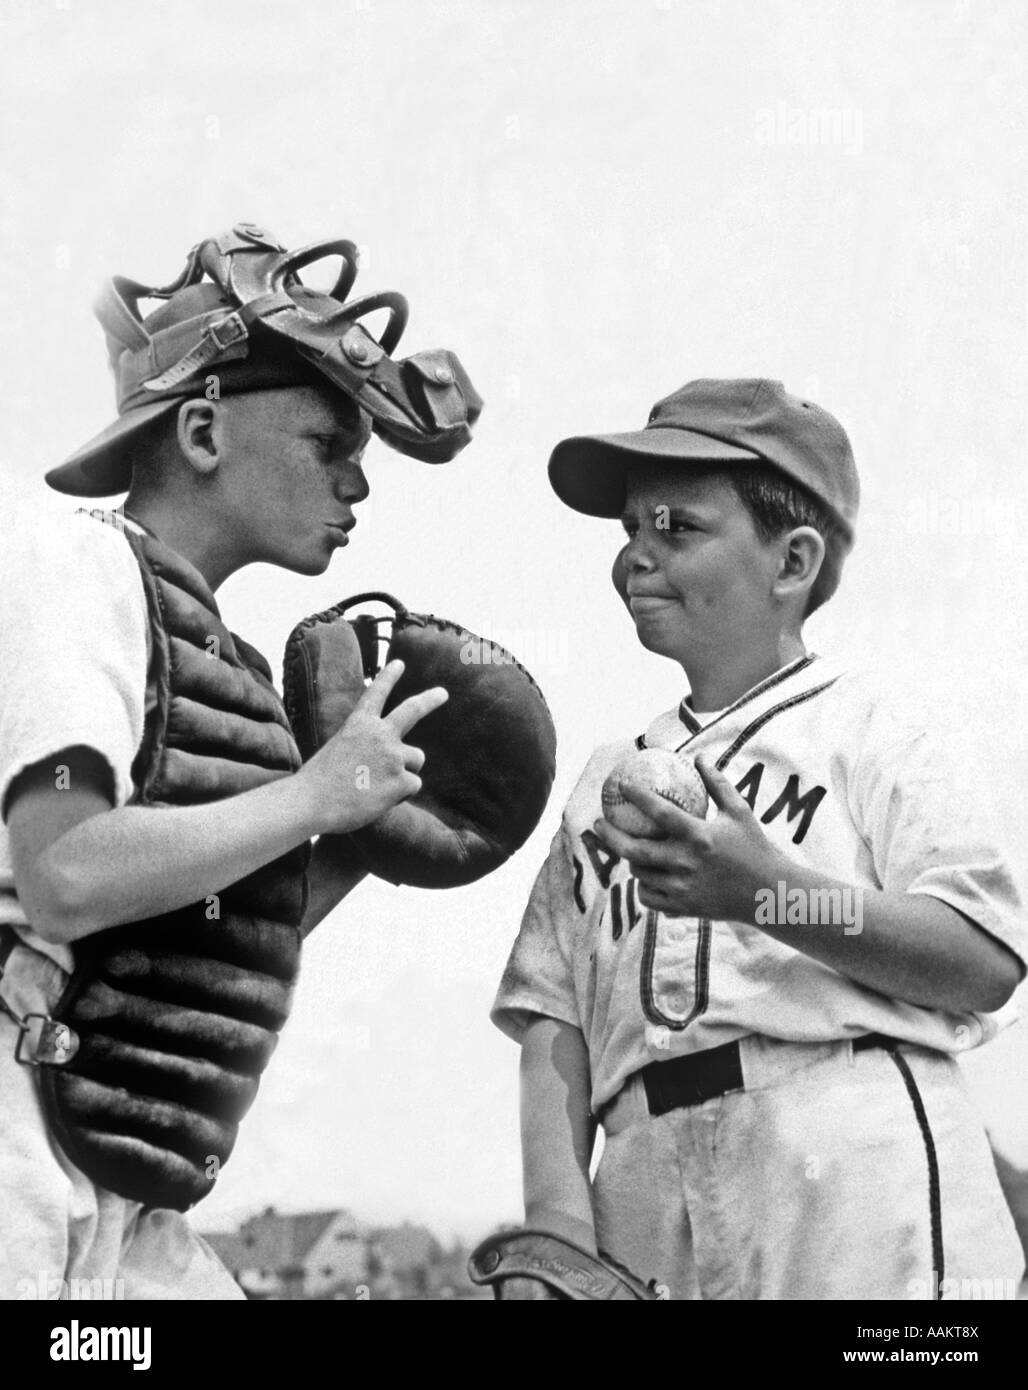 1950s TWO BOYS WEARING LITTLE LEAGUE BASEBALL UNIFORMS THE CATCHER IS GIVING ADVICE TO PITCHER - Stock Image